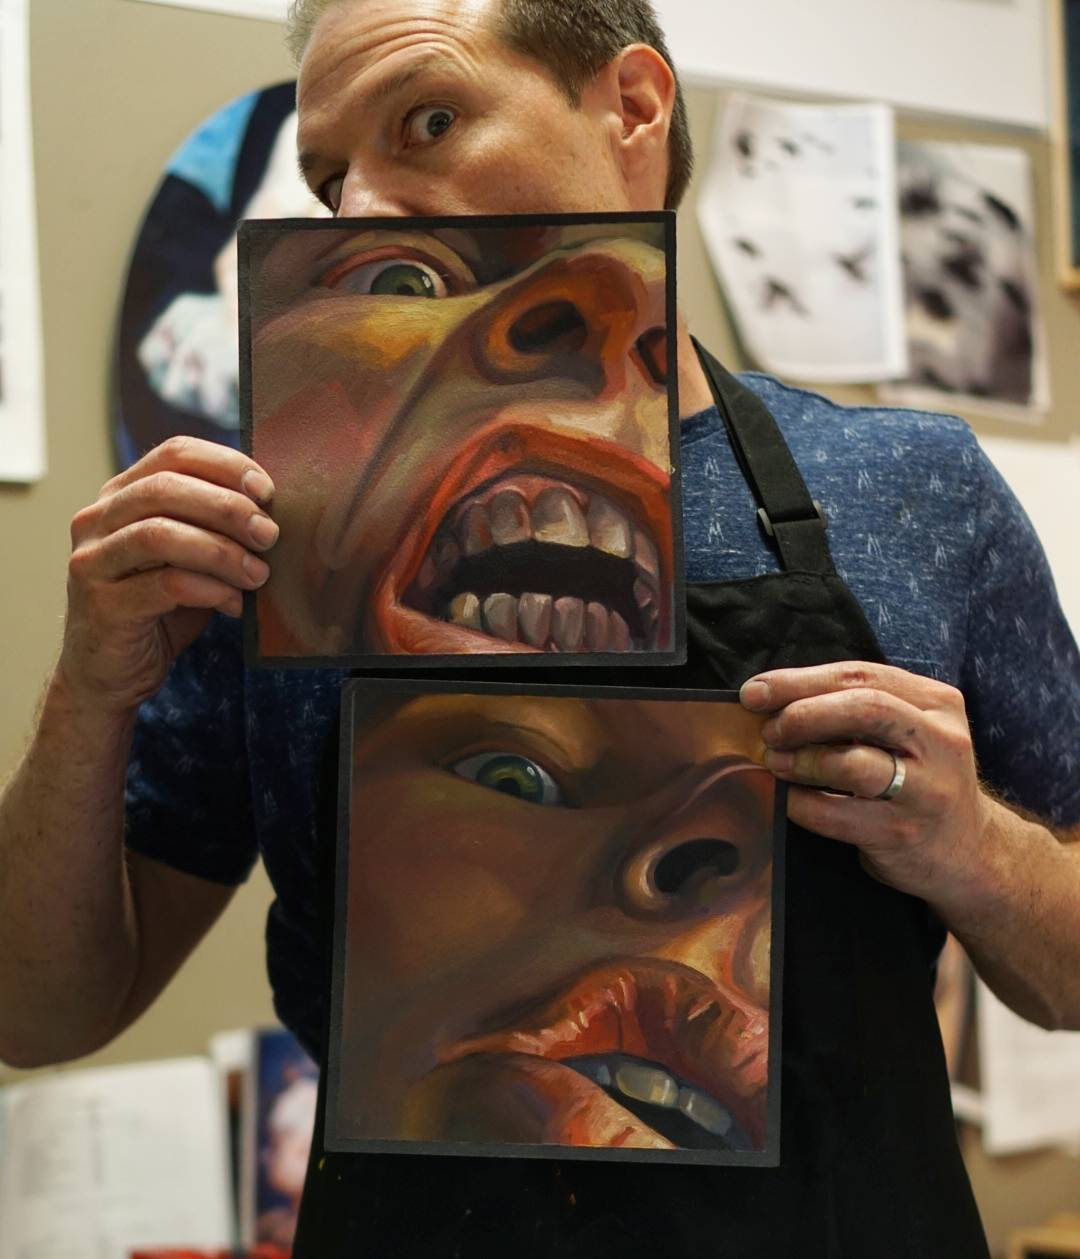 Instagram photo of Scott Hutchison in his studio posing in front of Face #1 and Face #2